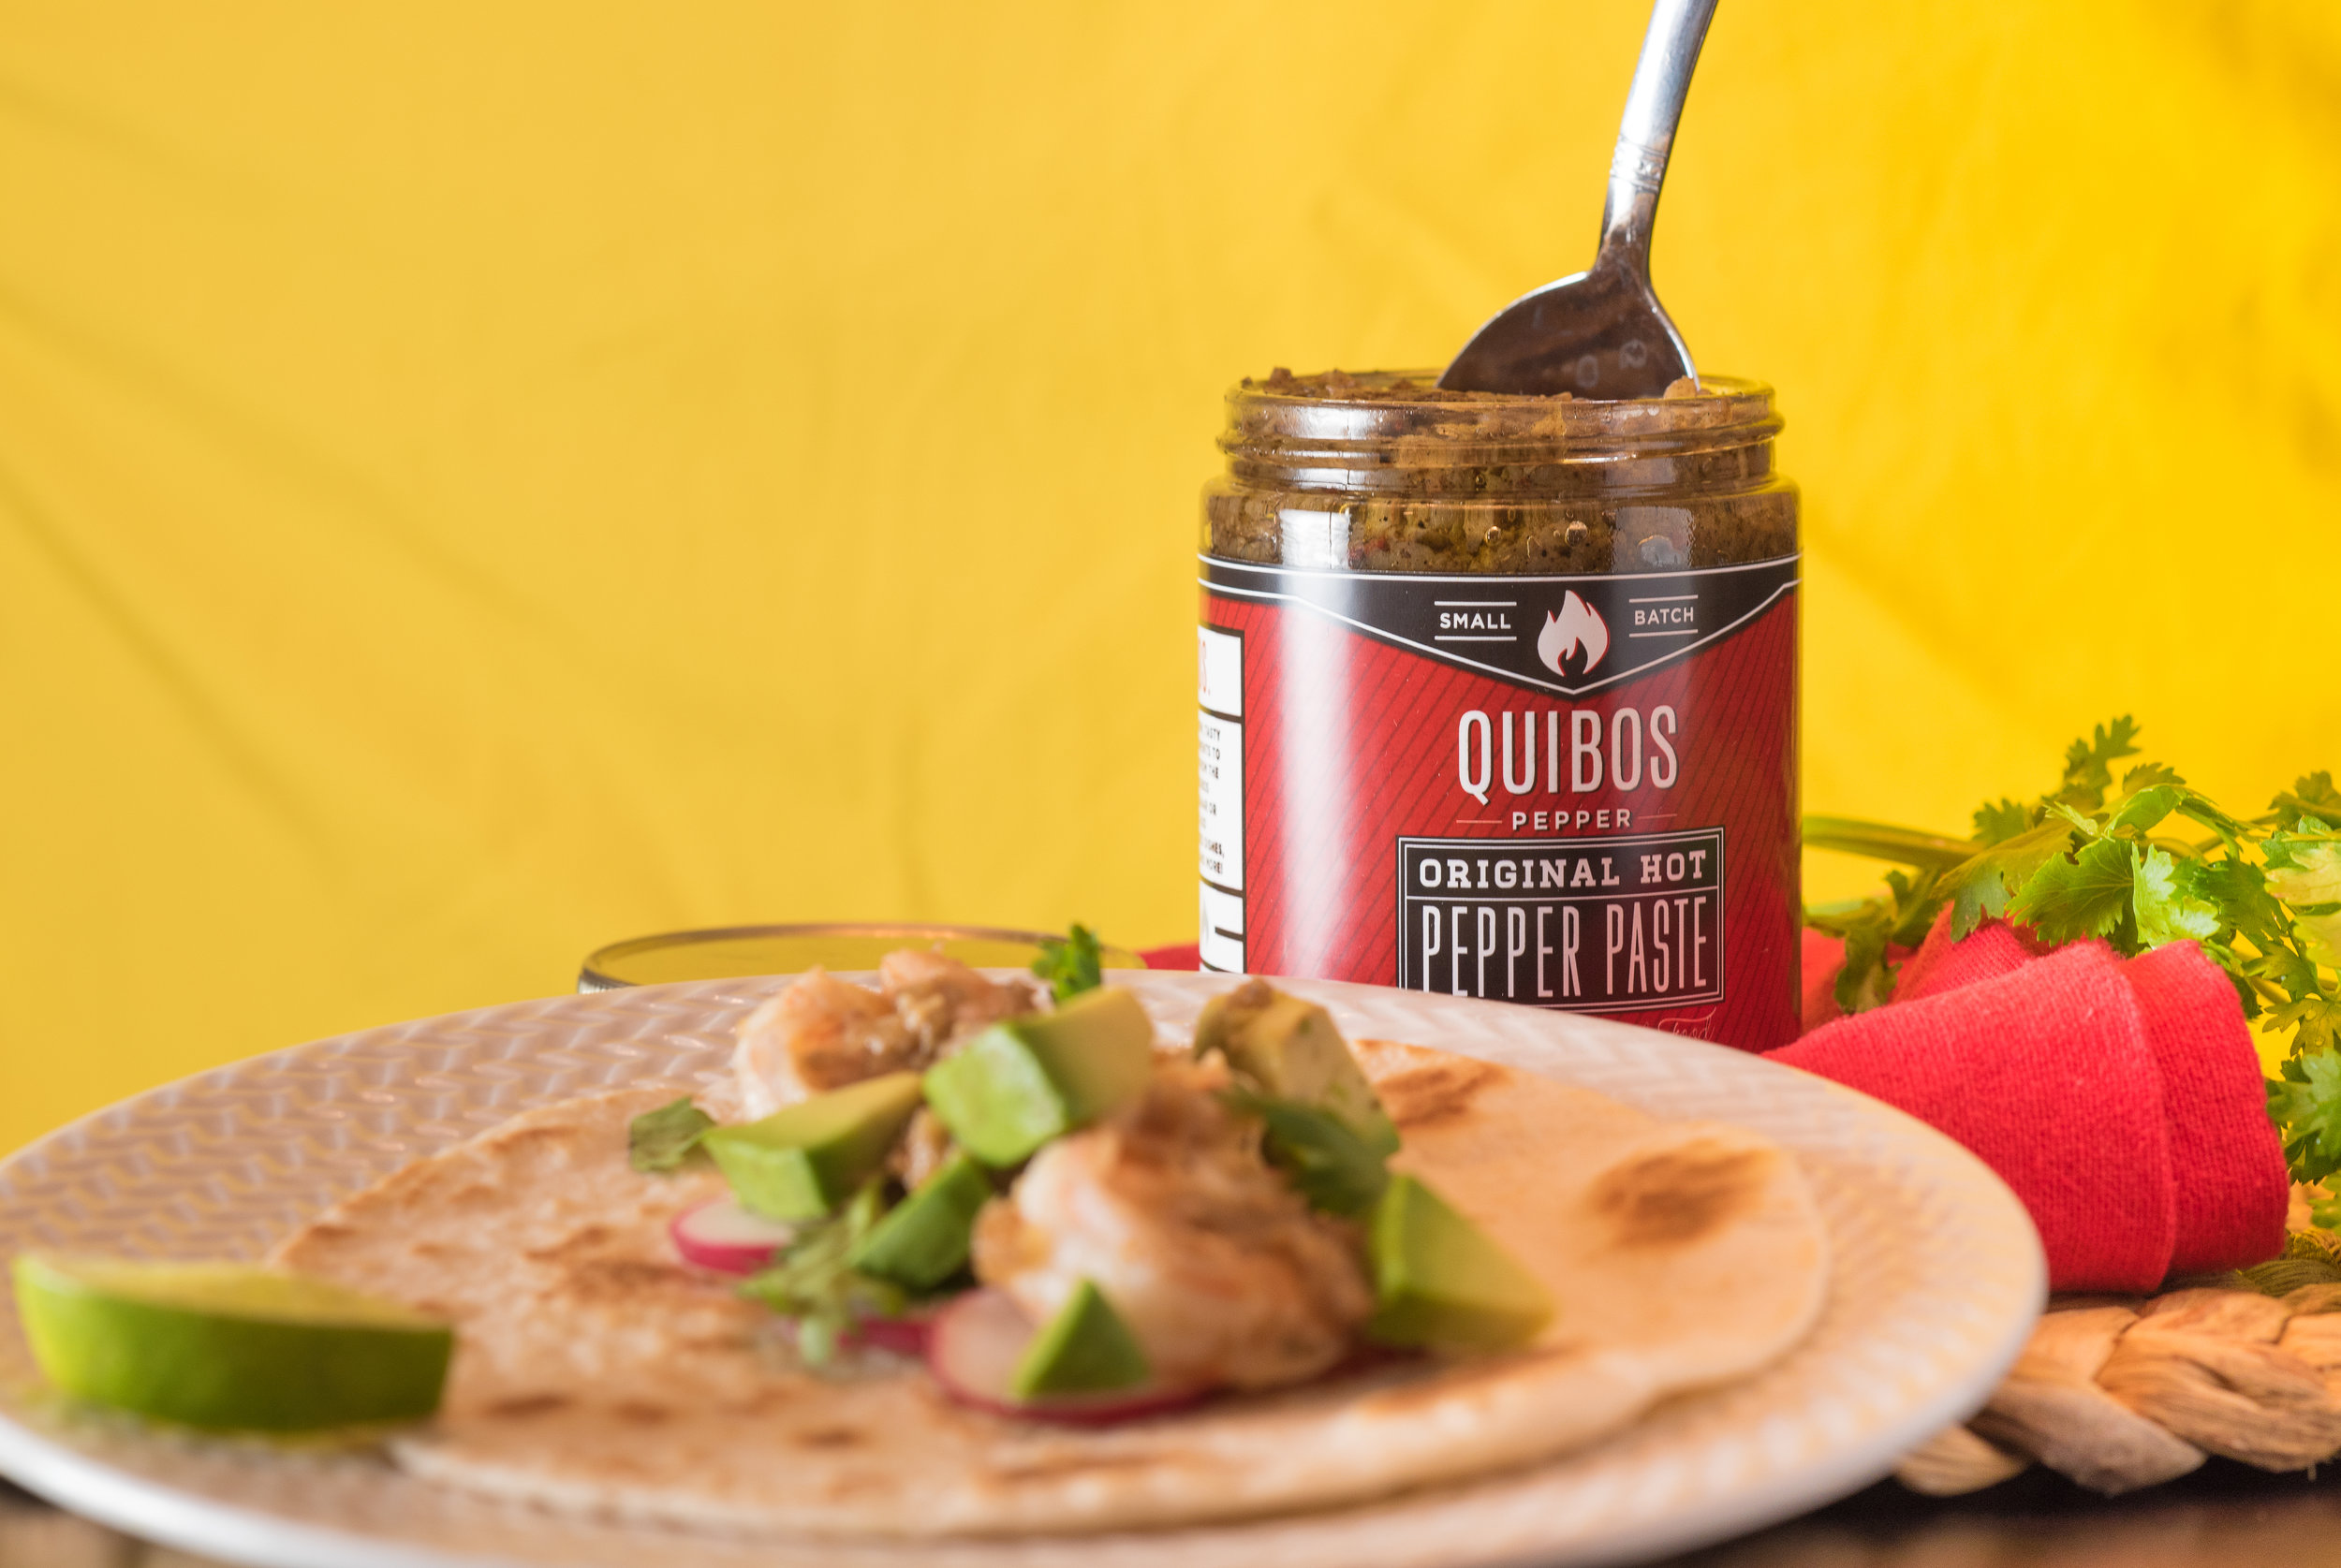 Quibos Pepper Paste Shrimp Tacos - Bring the heat to Taco Tuesday.